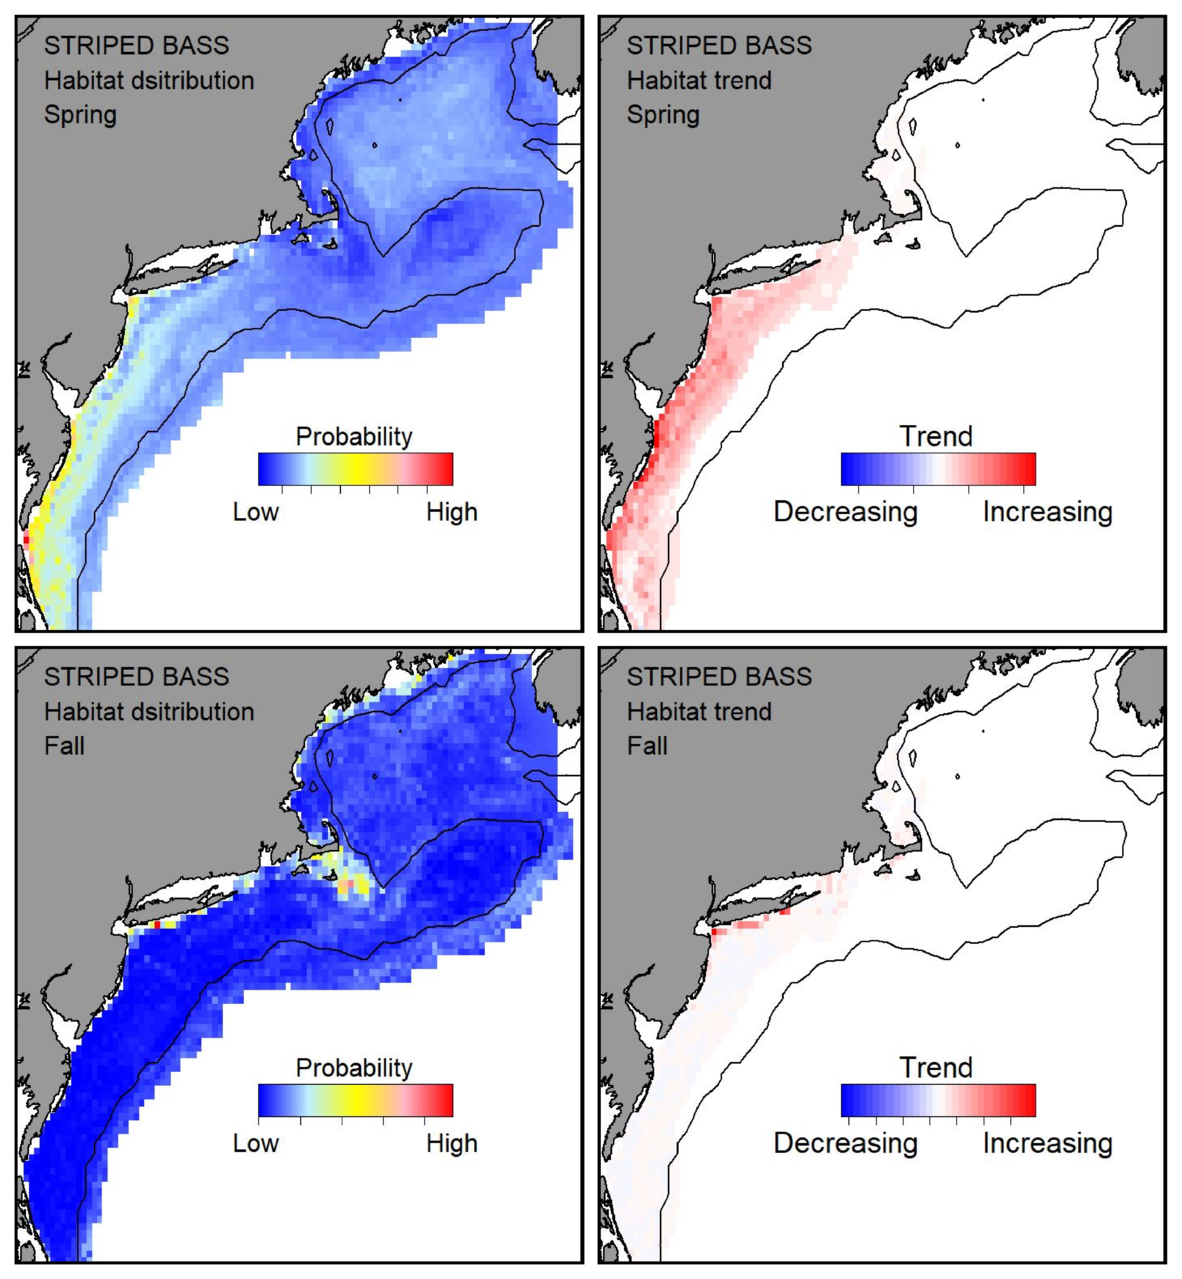 Probable habitat distribution for striped bass showing the highest concentration and increasing trend in the Gulf of Maine during the spring. Bottom row: Probable habitat distribution for striped bass showing the highest concentration and increasing trend in the Gulf of Maine during the fall.